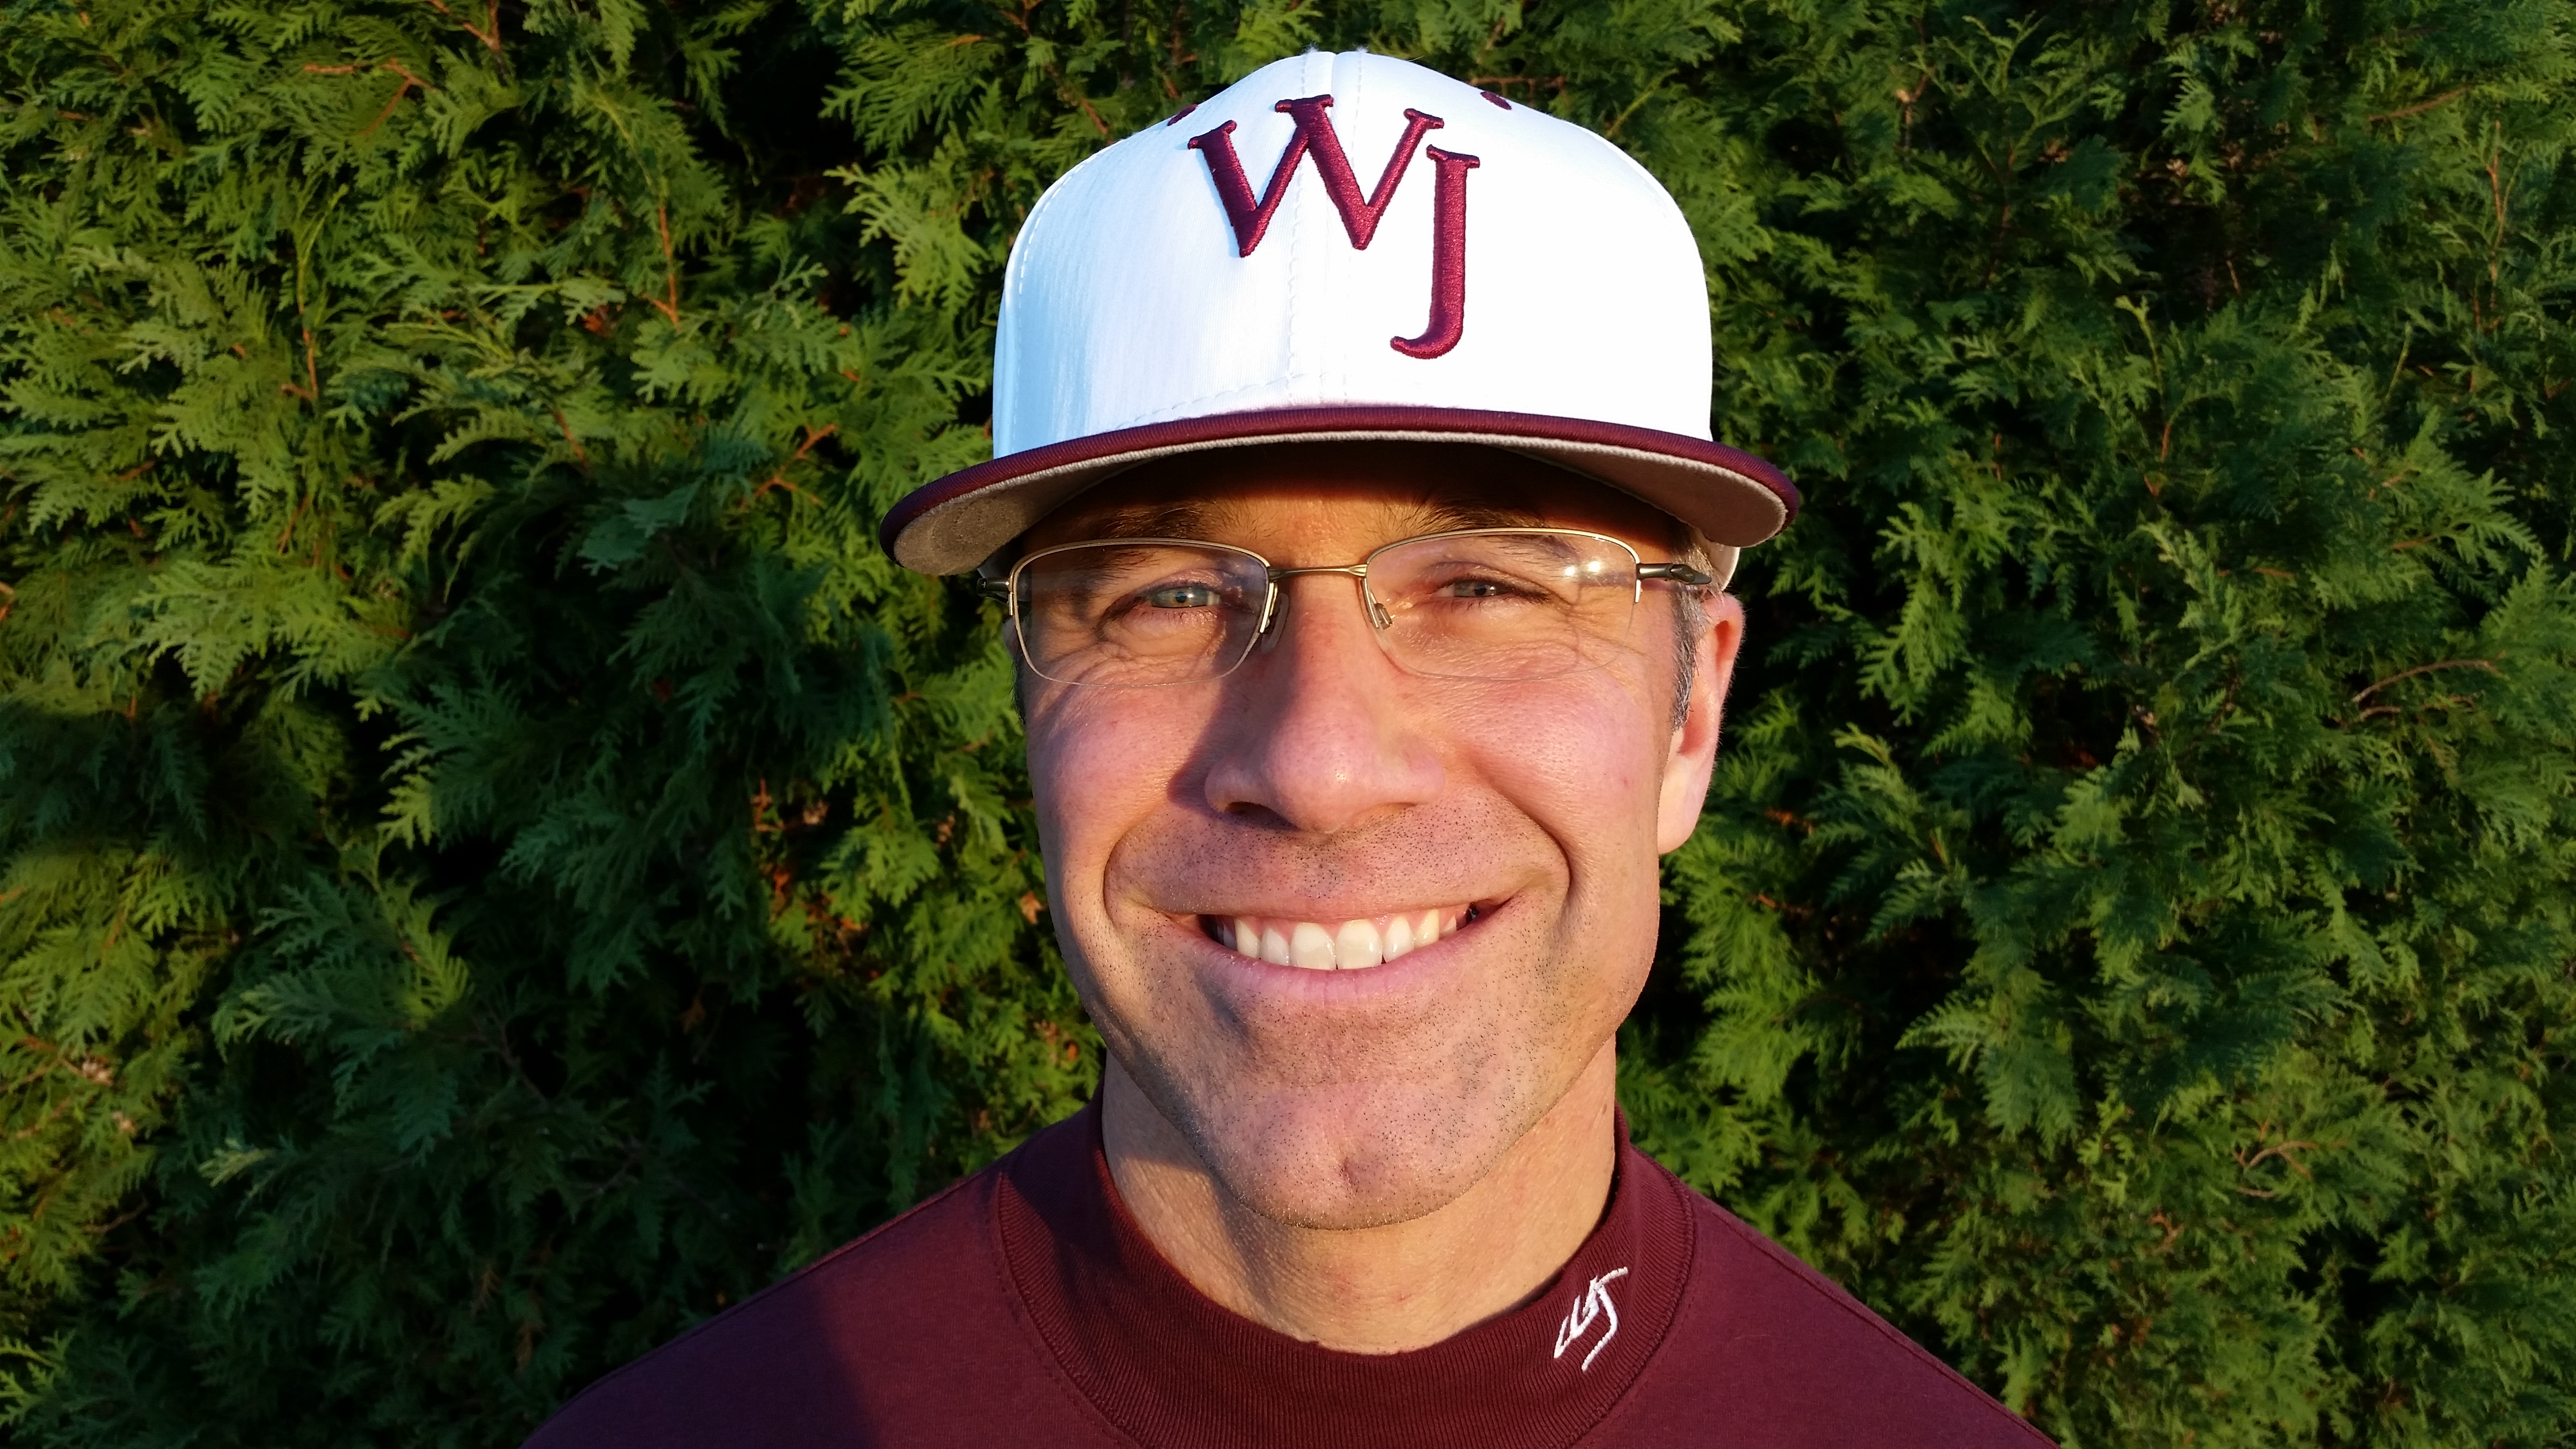 Walsh Jesuit baseball coach Chris Kaczmar / Photo courtesy Ohio High School Baseball Coaches Association